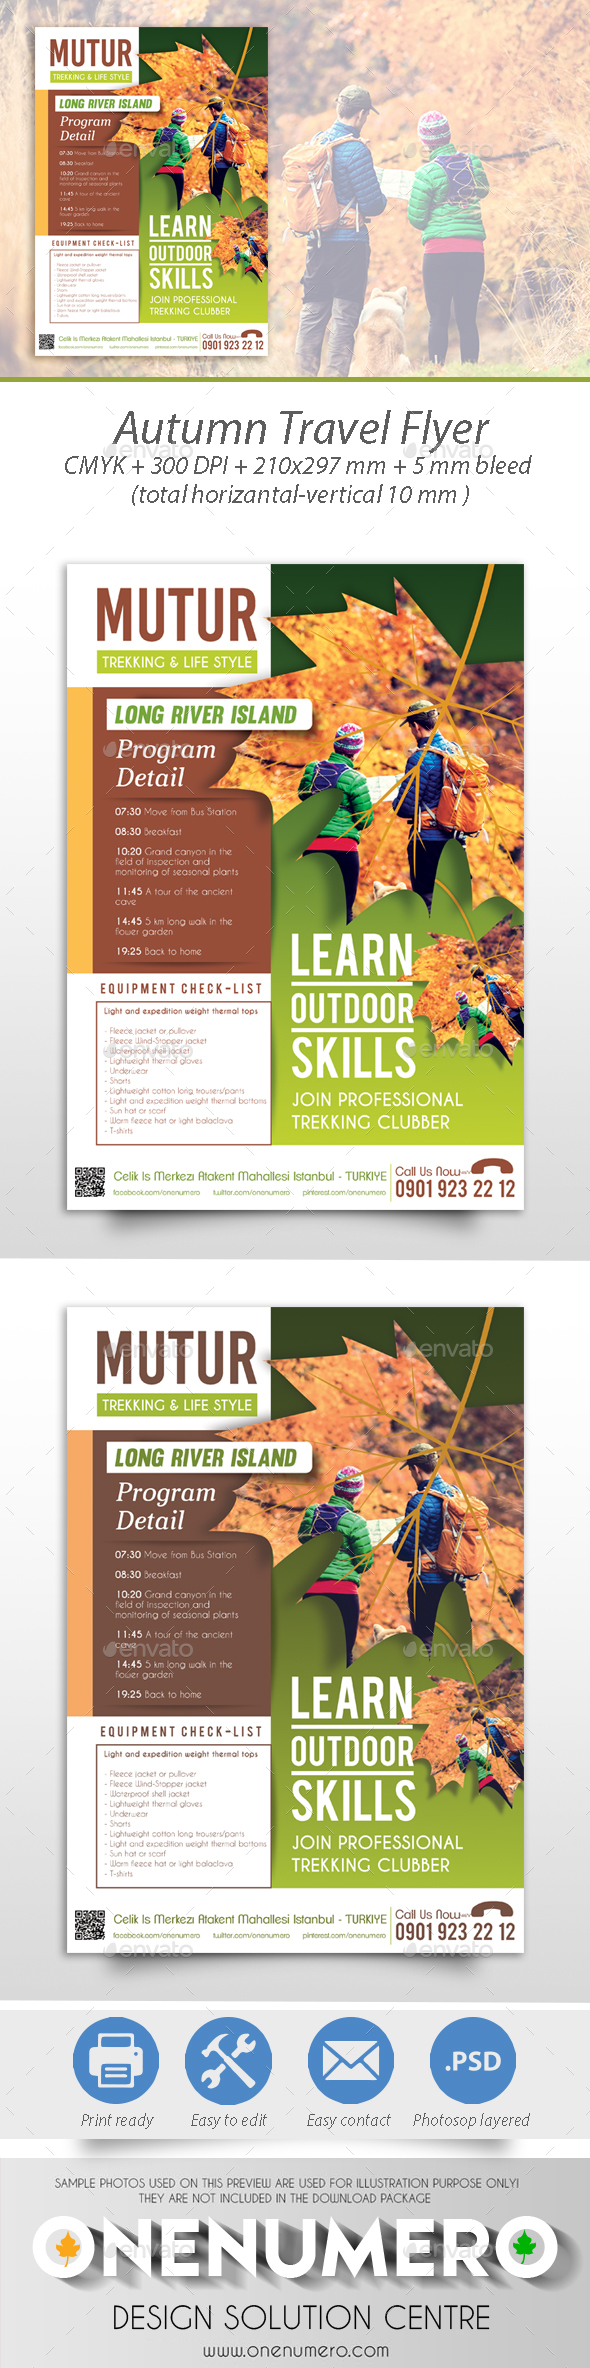 Autumn Travel Flyer - Corporate Flyers